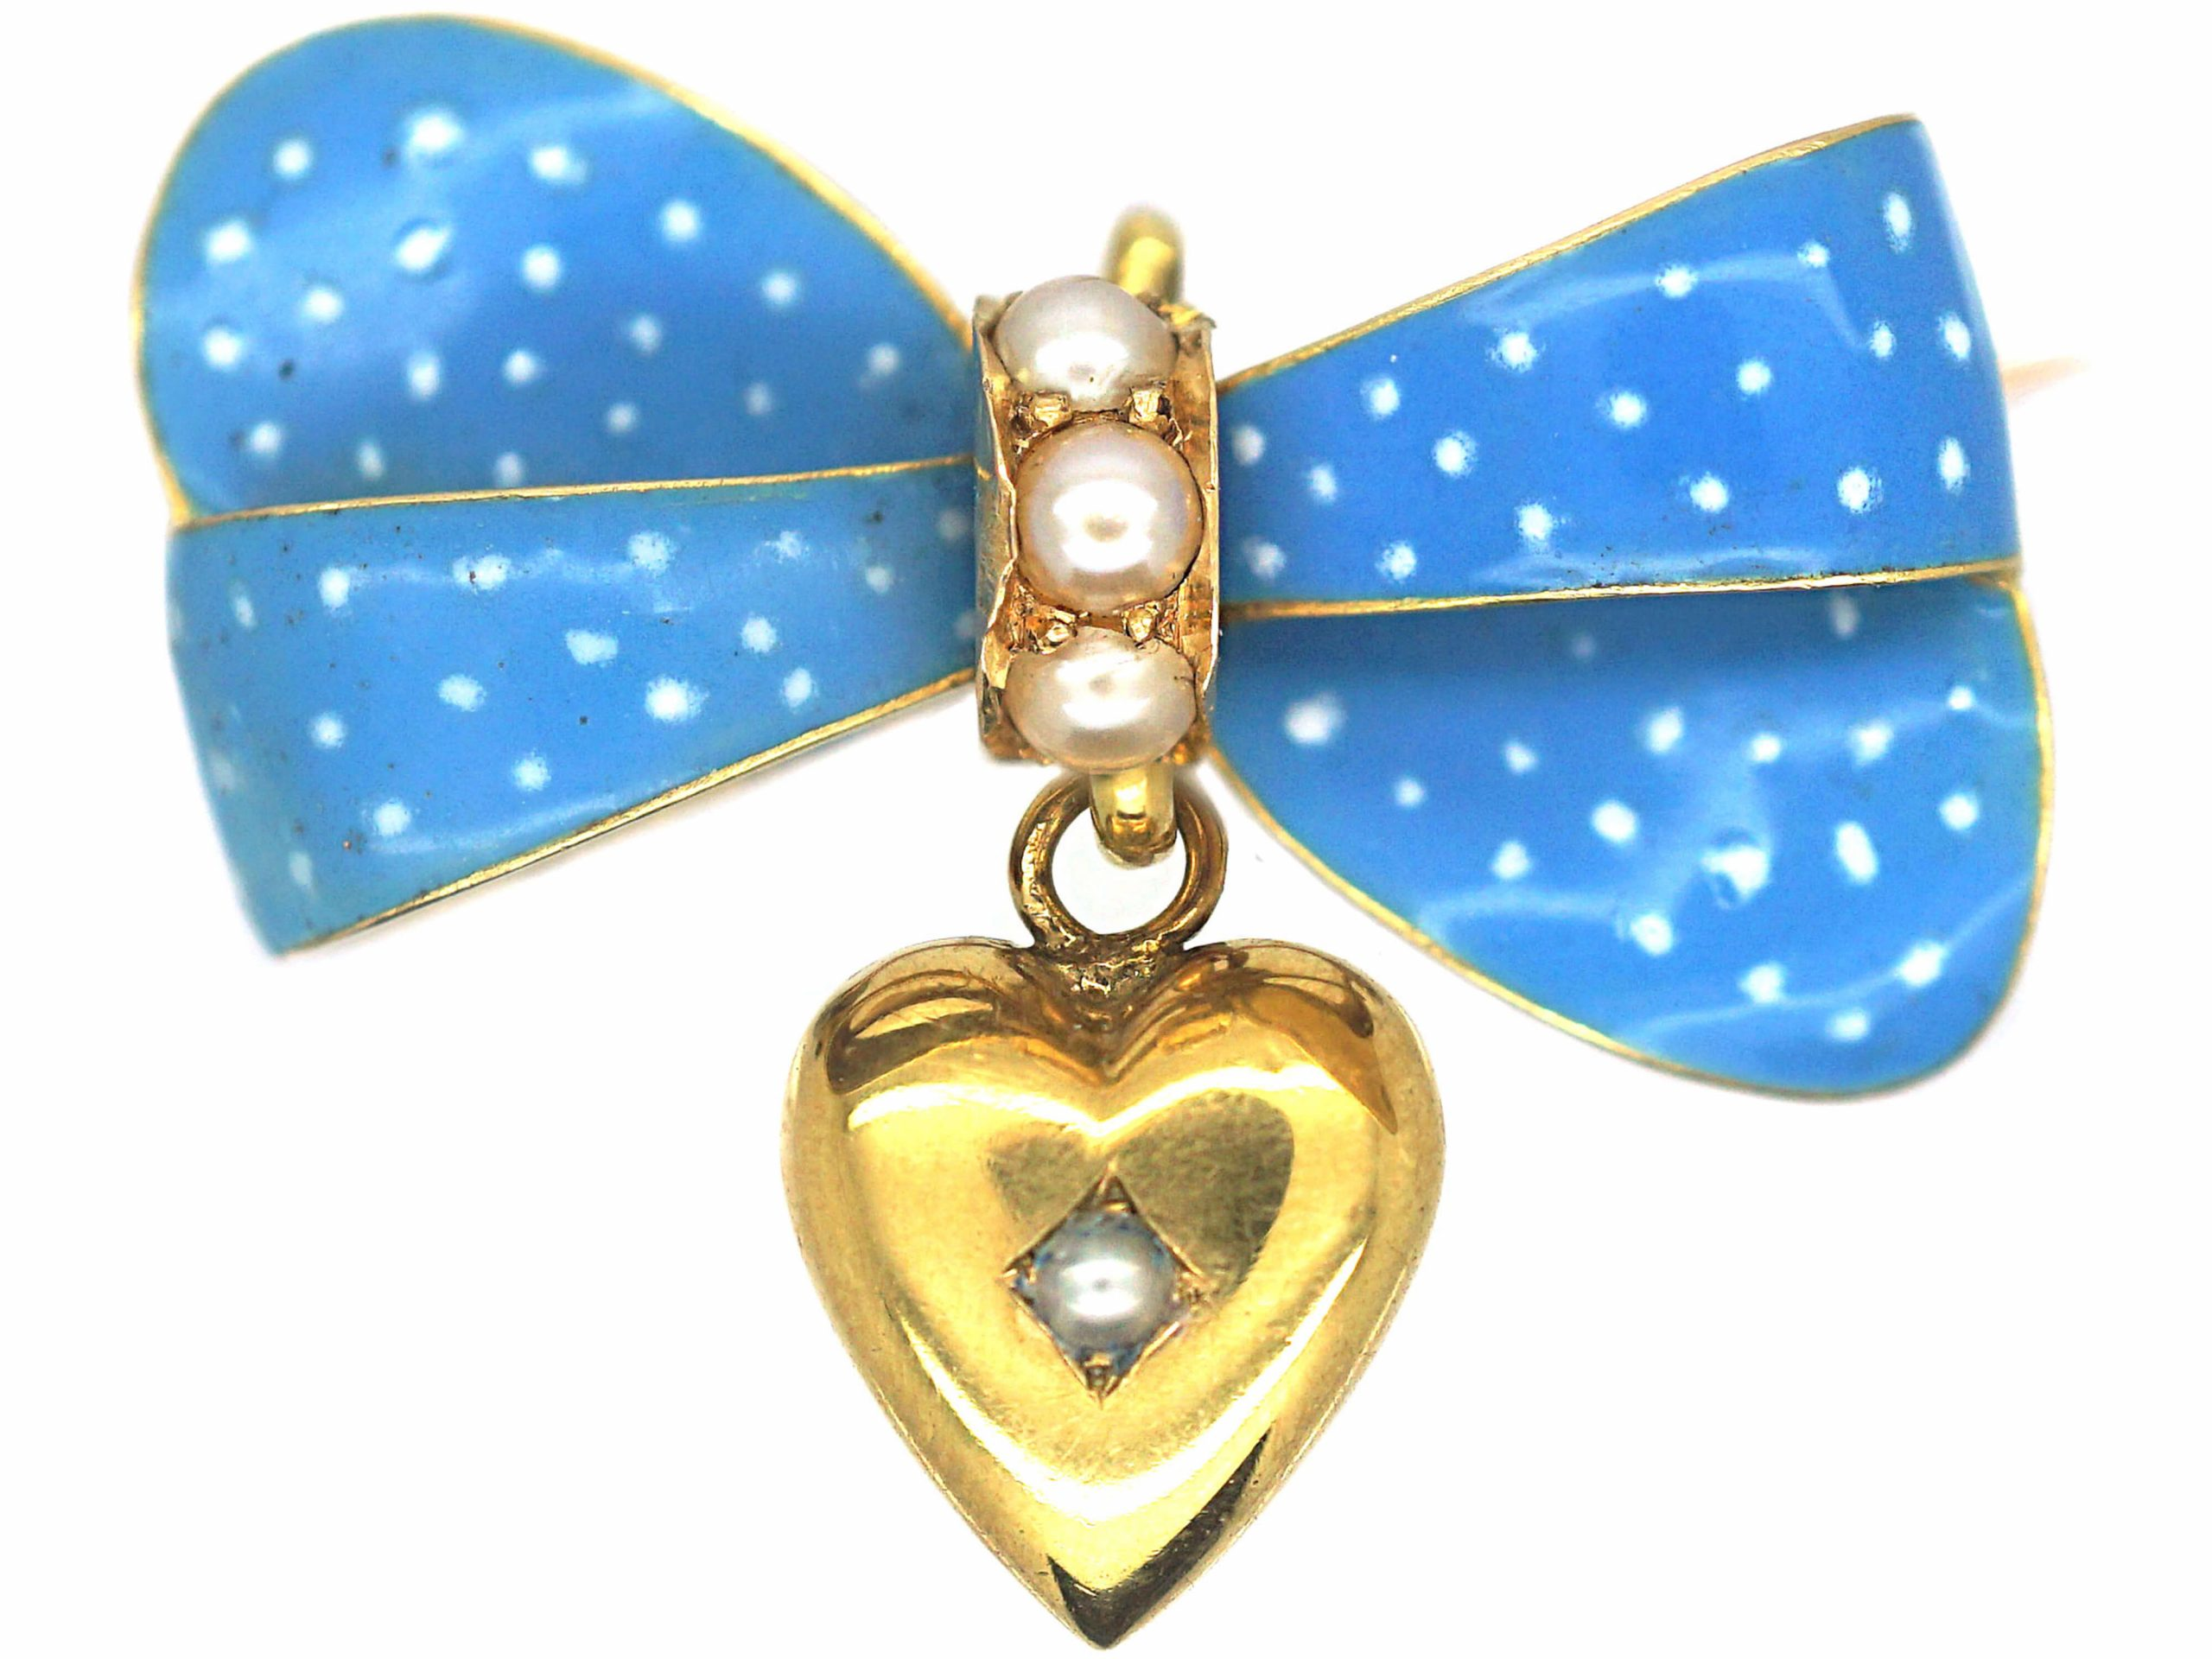 Edwardian 18ct Gold & Blue & White Enamel Bow Brooch with Heart Shaped Drop set with Natural Split Pearls